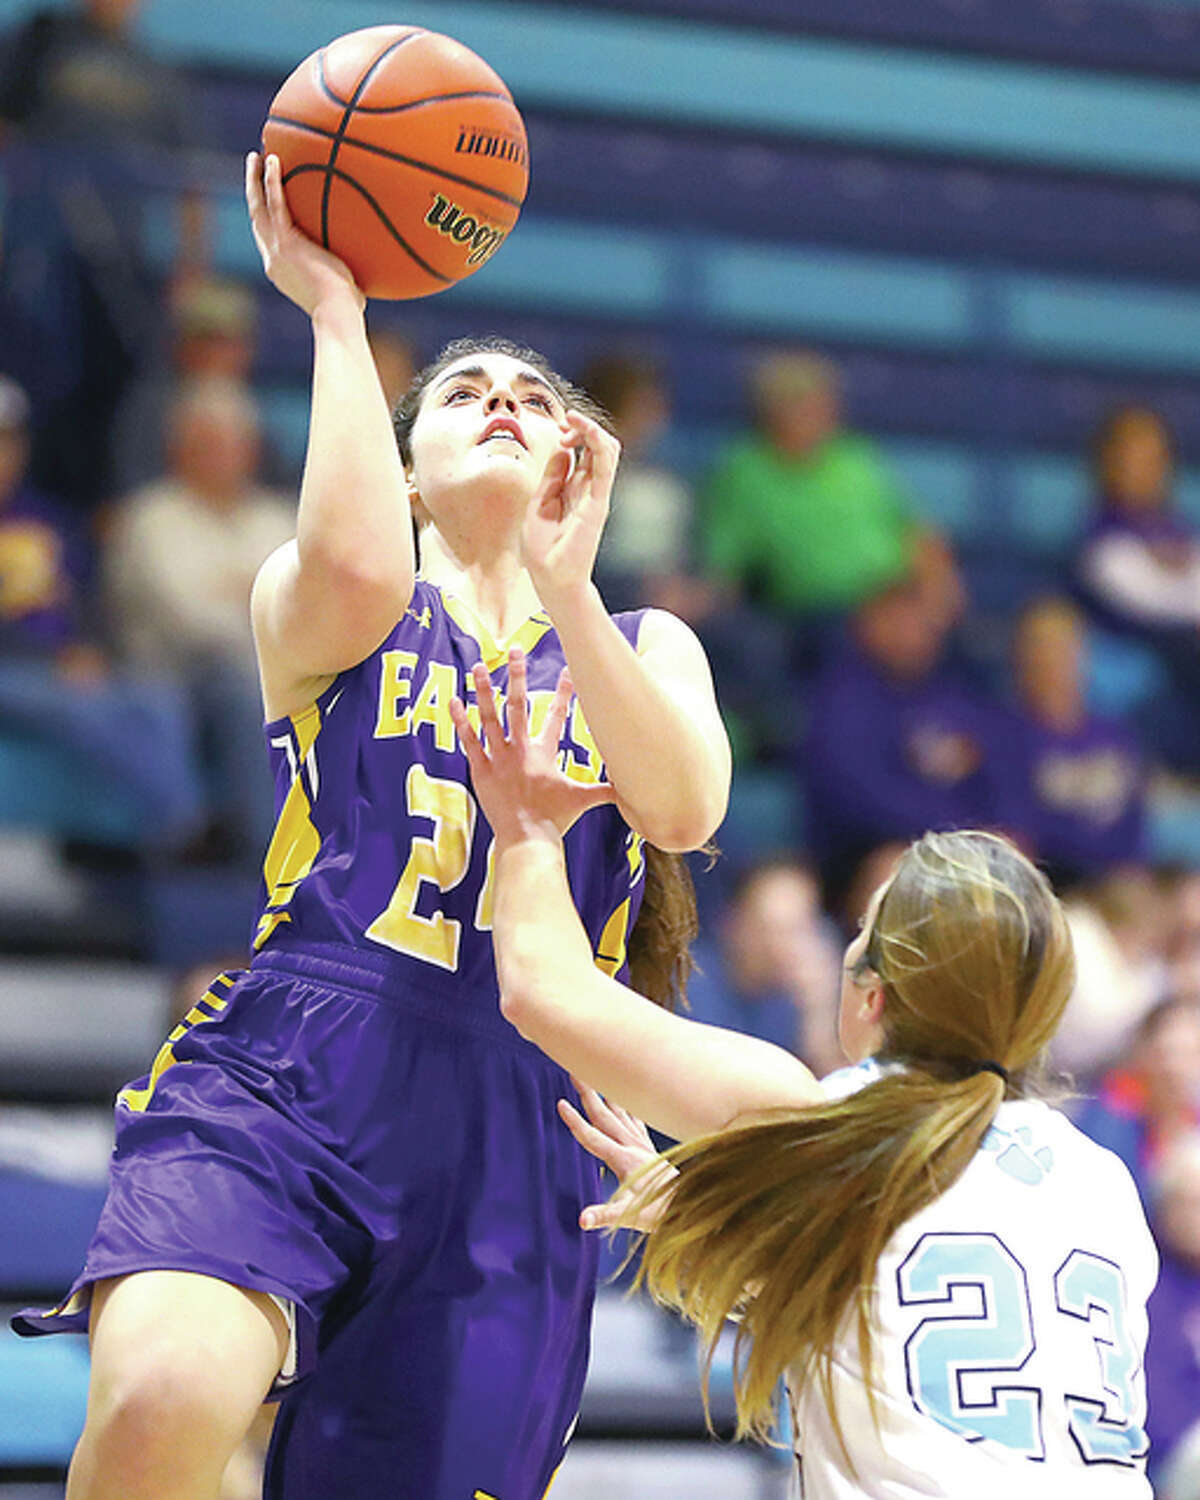 CM's Kaylee Eaton, left, led the Eagles with 17 points, three steals and five rebounds in a 76-23 win over Mascoutah Thursday night.